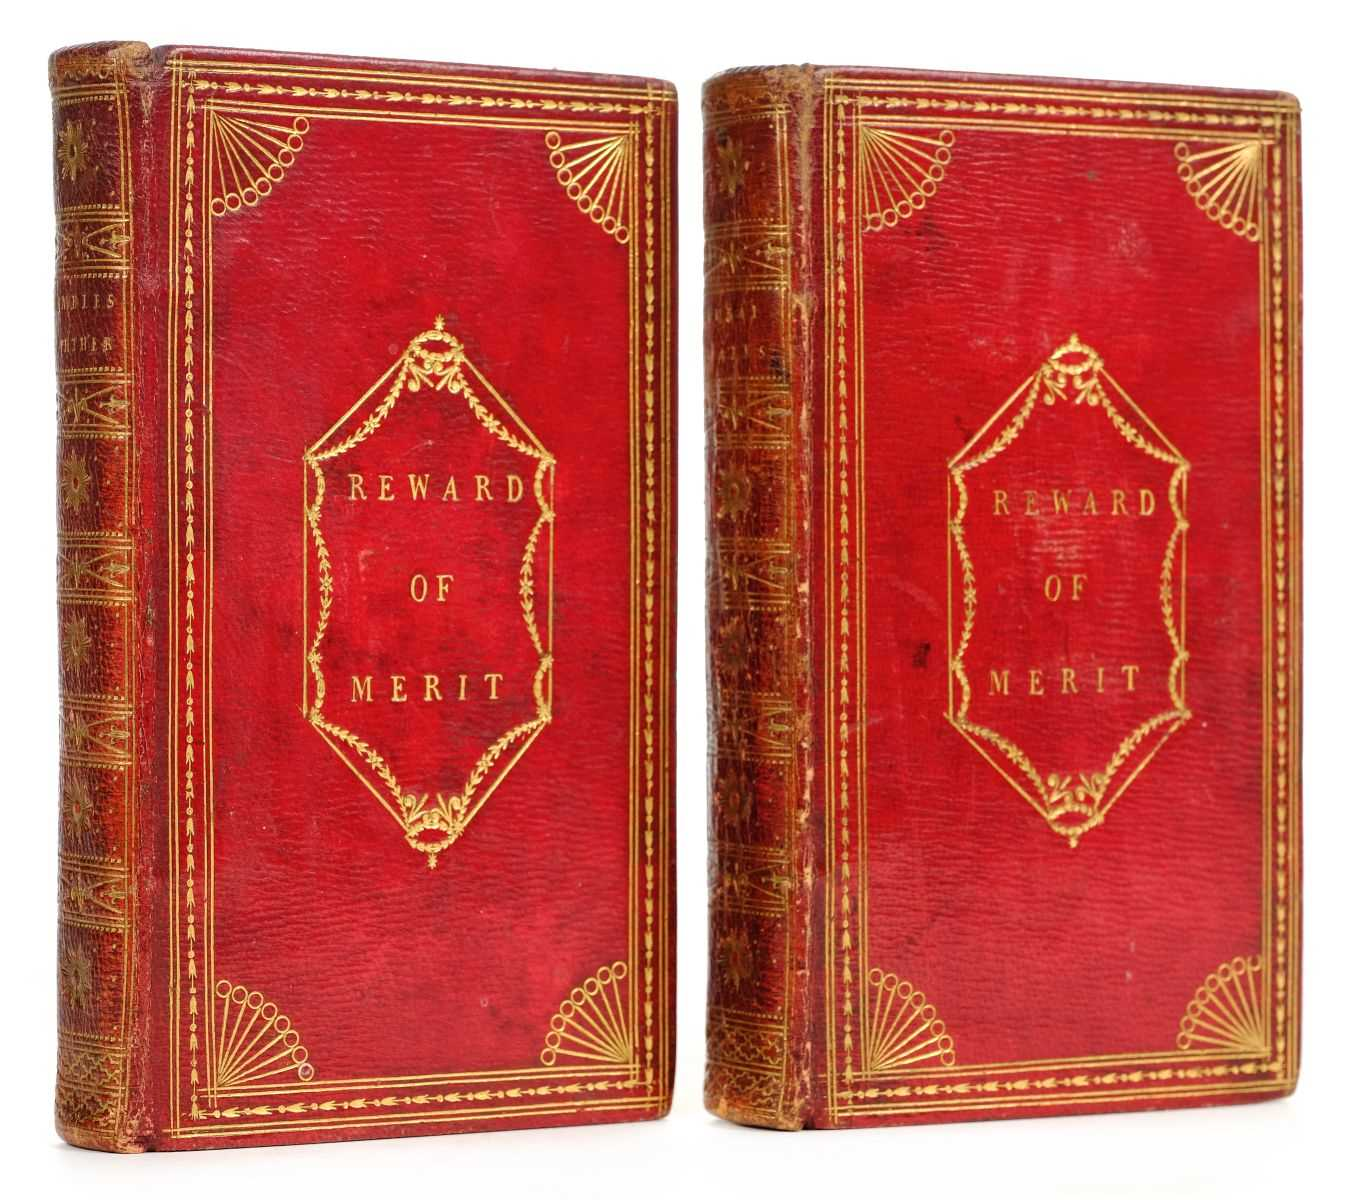 Lot 328 - Smith (Charlotte Turner). Rural Walks [and] Rambles Farther, red morocco gilt, 1800